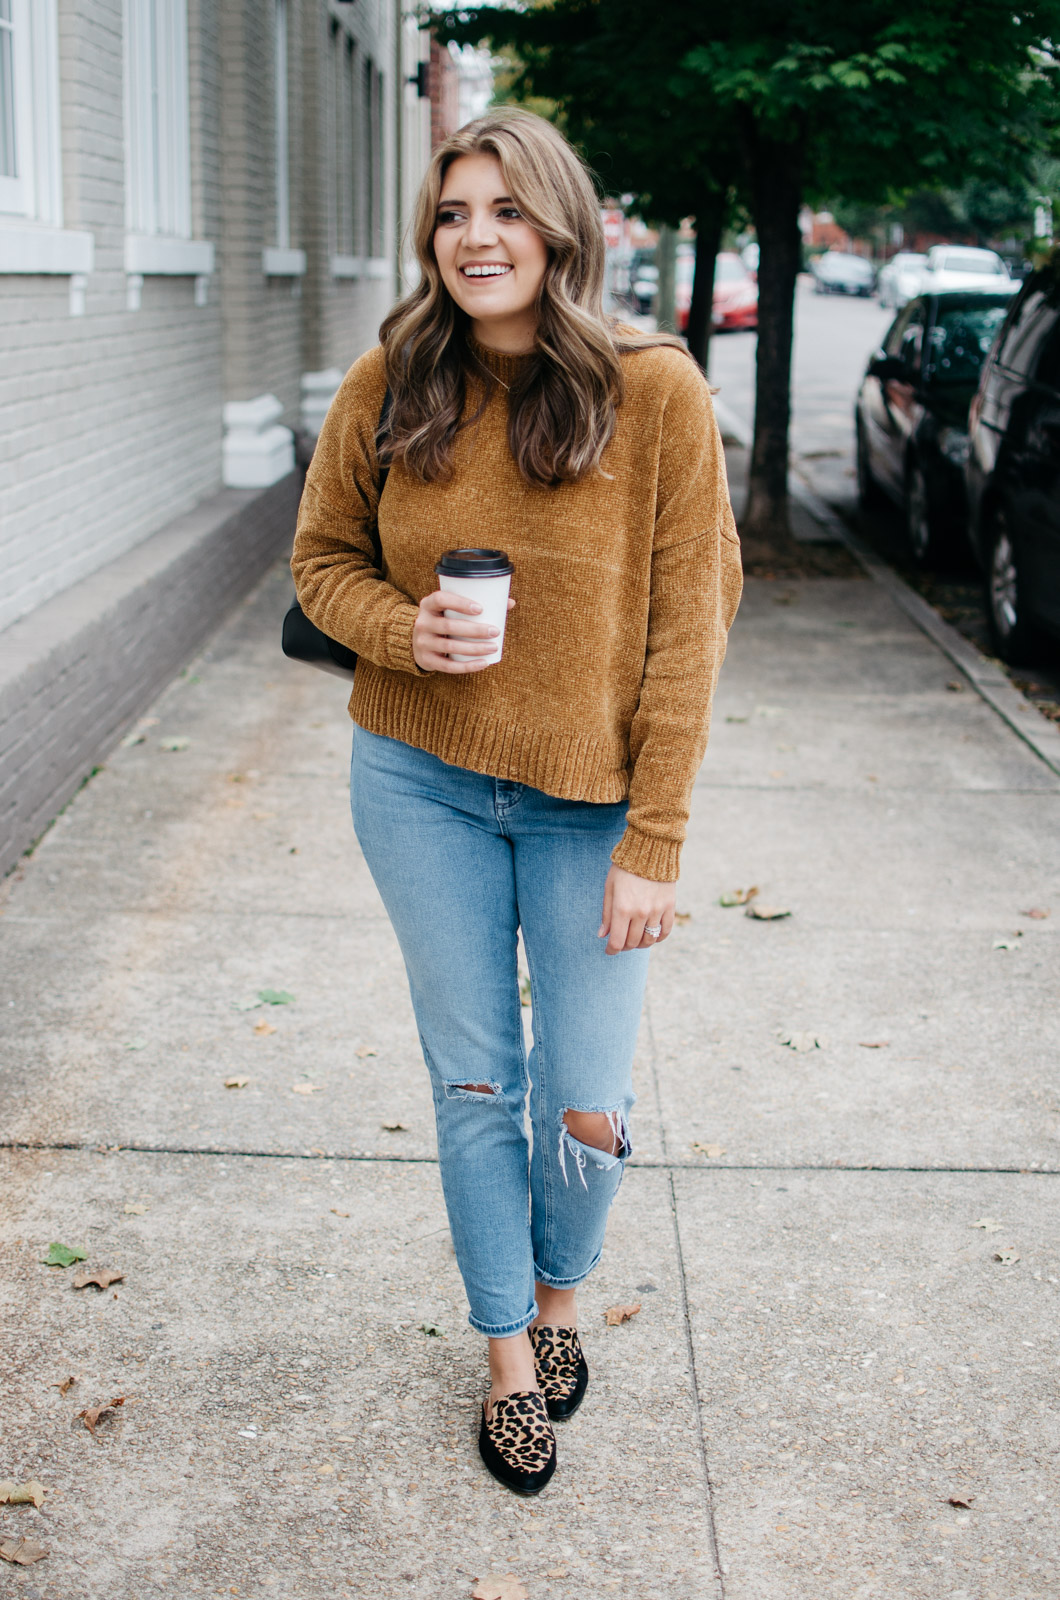 must-have jeans for fall: how to wear mom jeans | See more trendy fall outfits at bylaurenm.com!